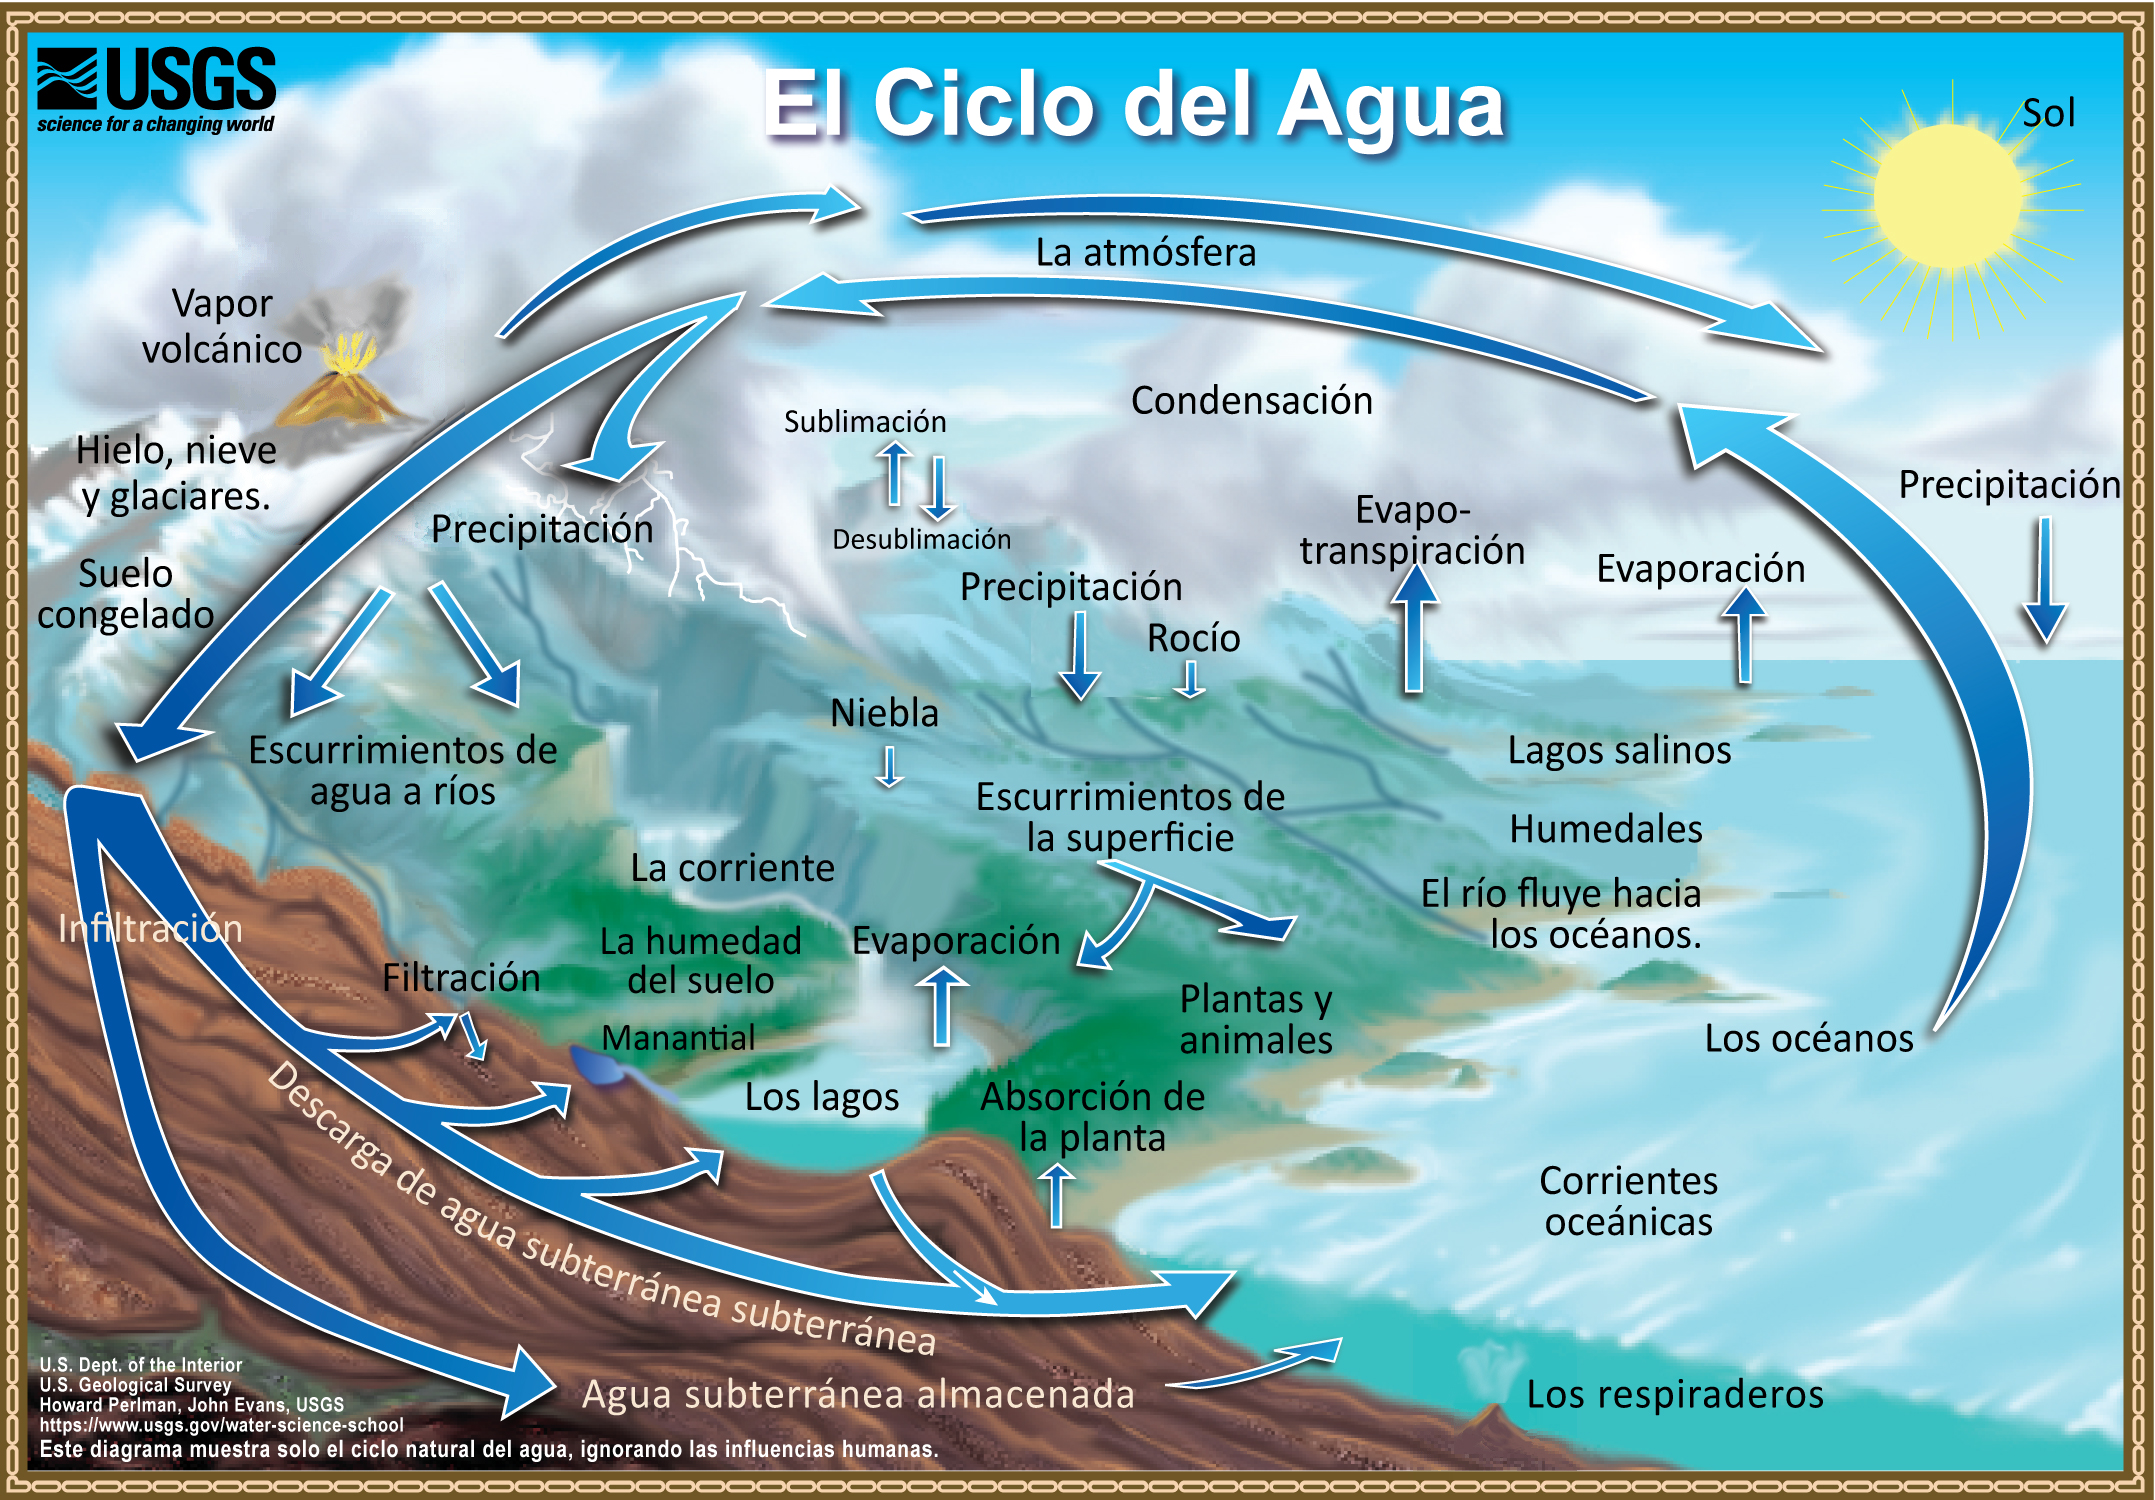 http://upload.wikimedia.org/wikipedia/commons/c/c5/Ciclo-del-agua.jpg